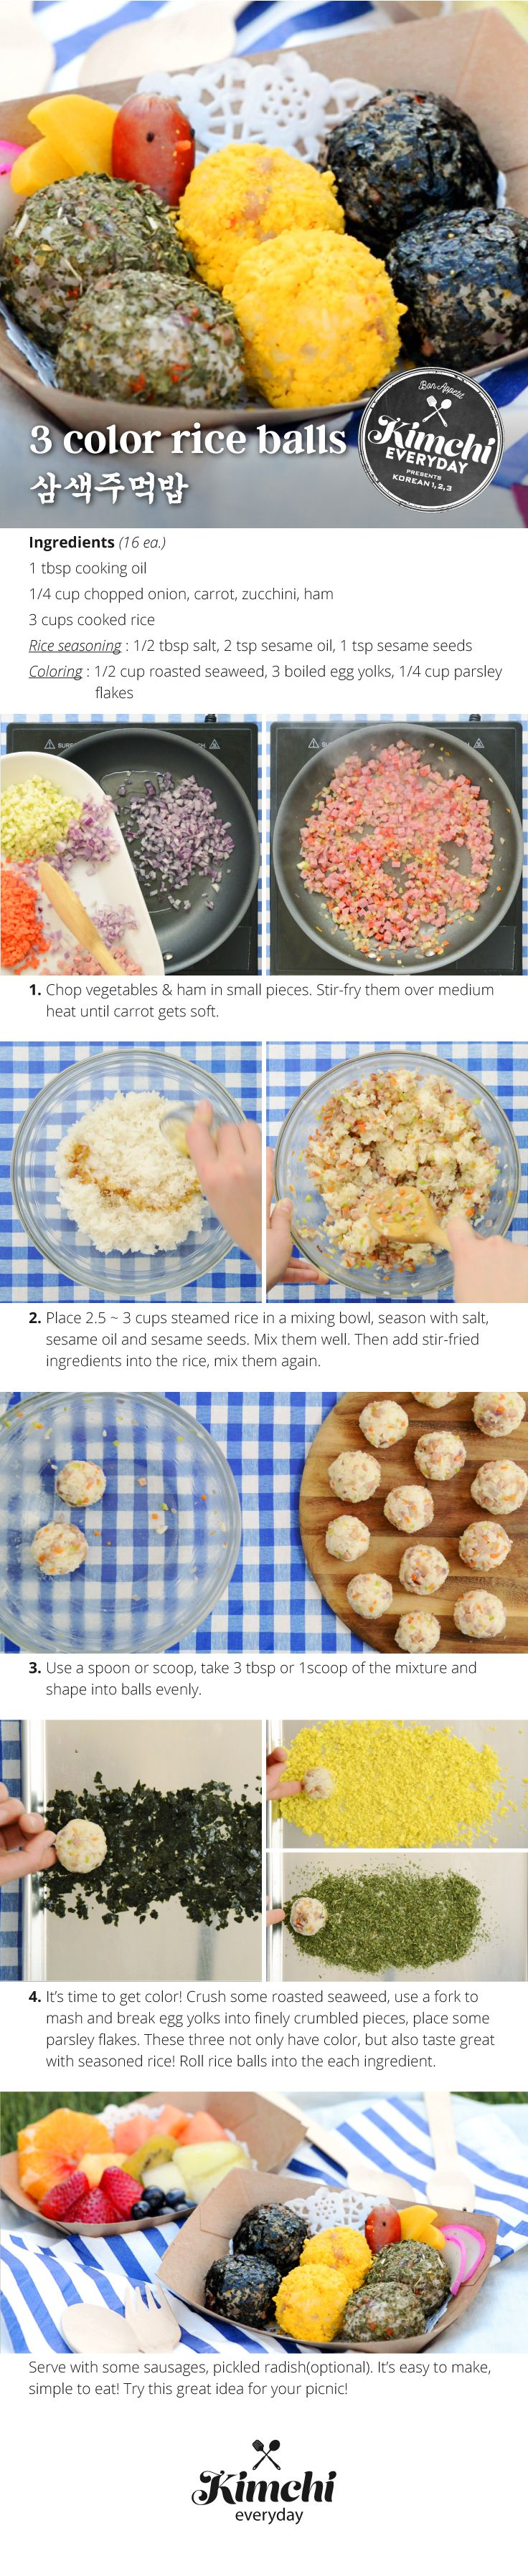 It's easy to make, simple to eat. Try this great idea for your picnic!